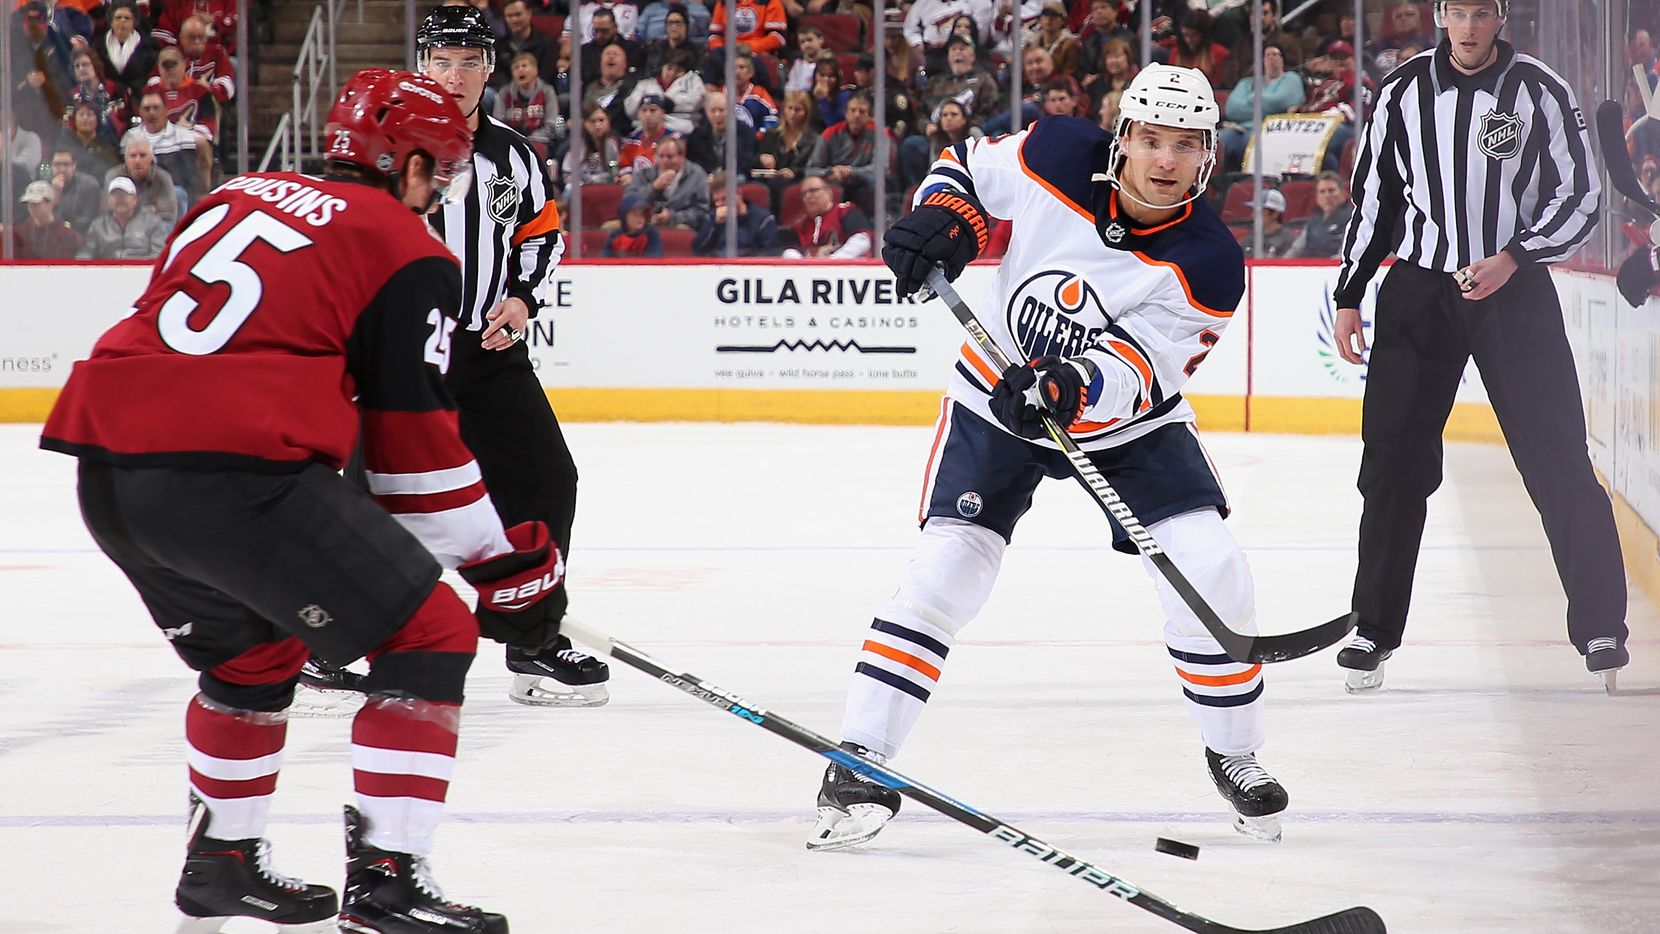 GLENDALE, AZ - JANUARY 12:  Andrej Sekera #2 of the Edmonton Oilers passes the puck around Josh Archibald #45 of the Arizona Coyotes during the second period of the NHL game at Gila River Arena on January 12, 2018 in Glendale, Arizona.  (Photo by Christian Petersen/Getty Images)